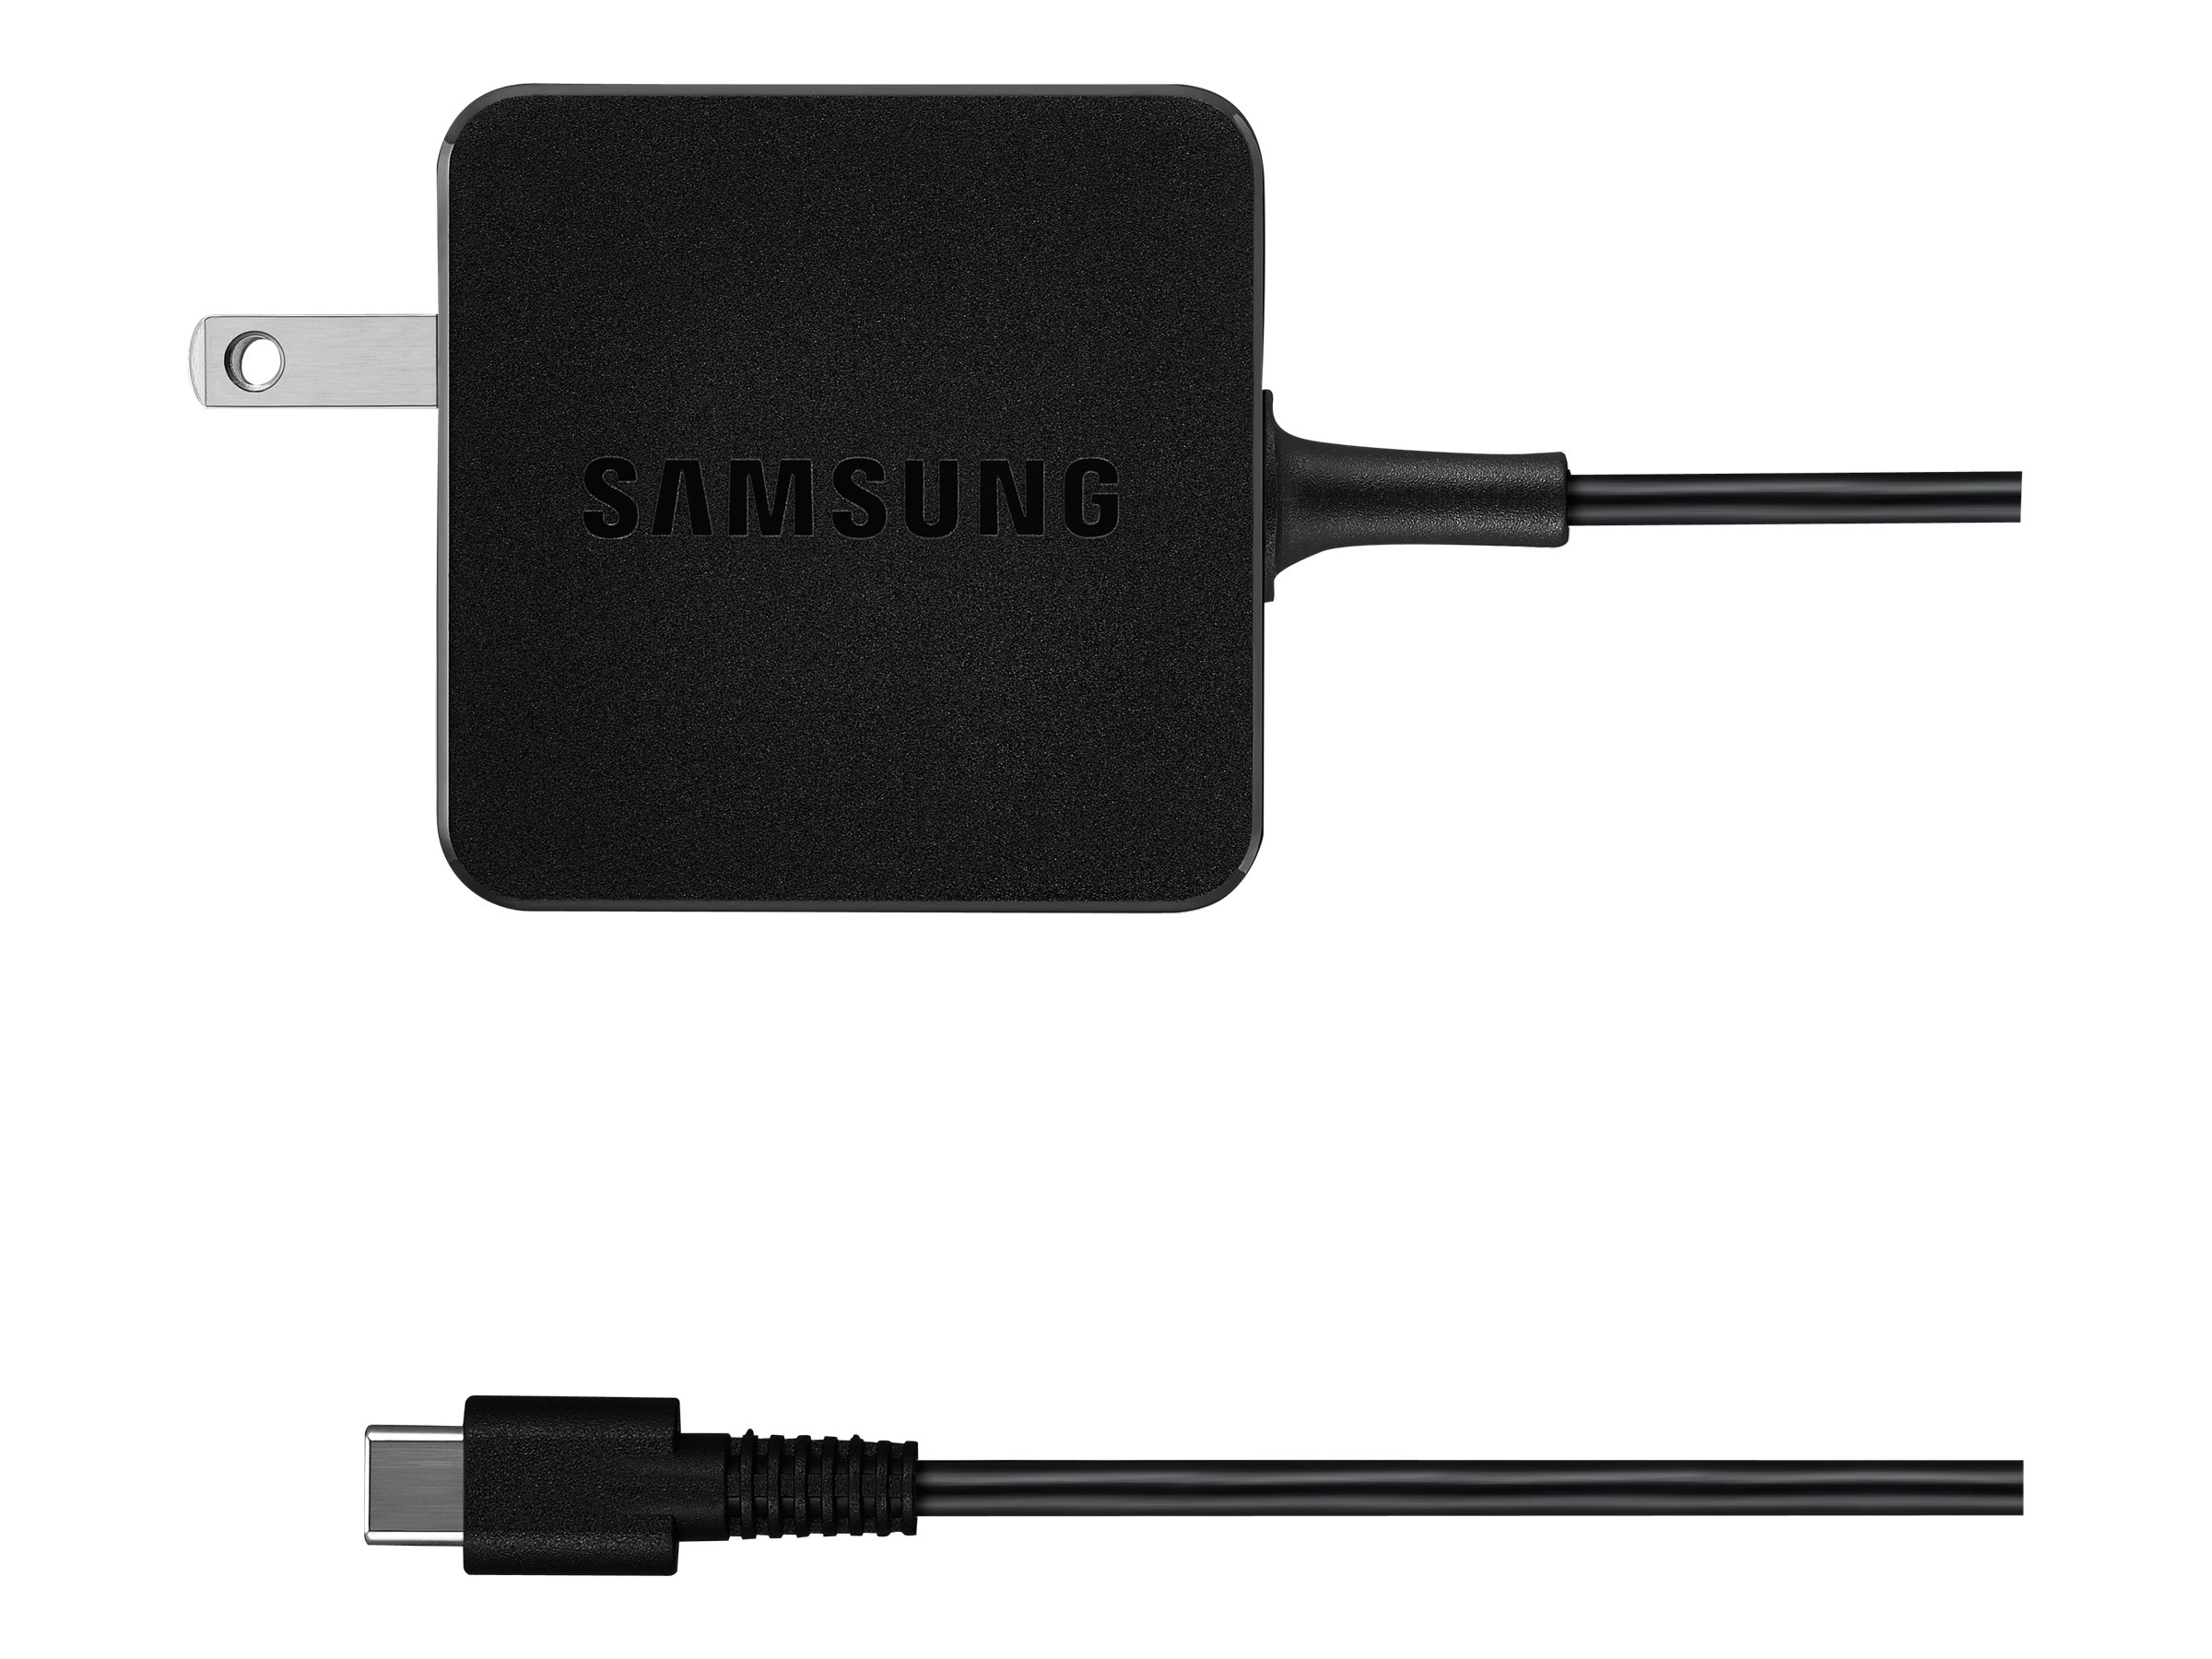 Samsung AA-PT1C93B - power adapter - 30 Watt